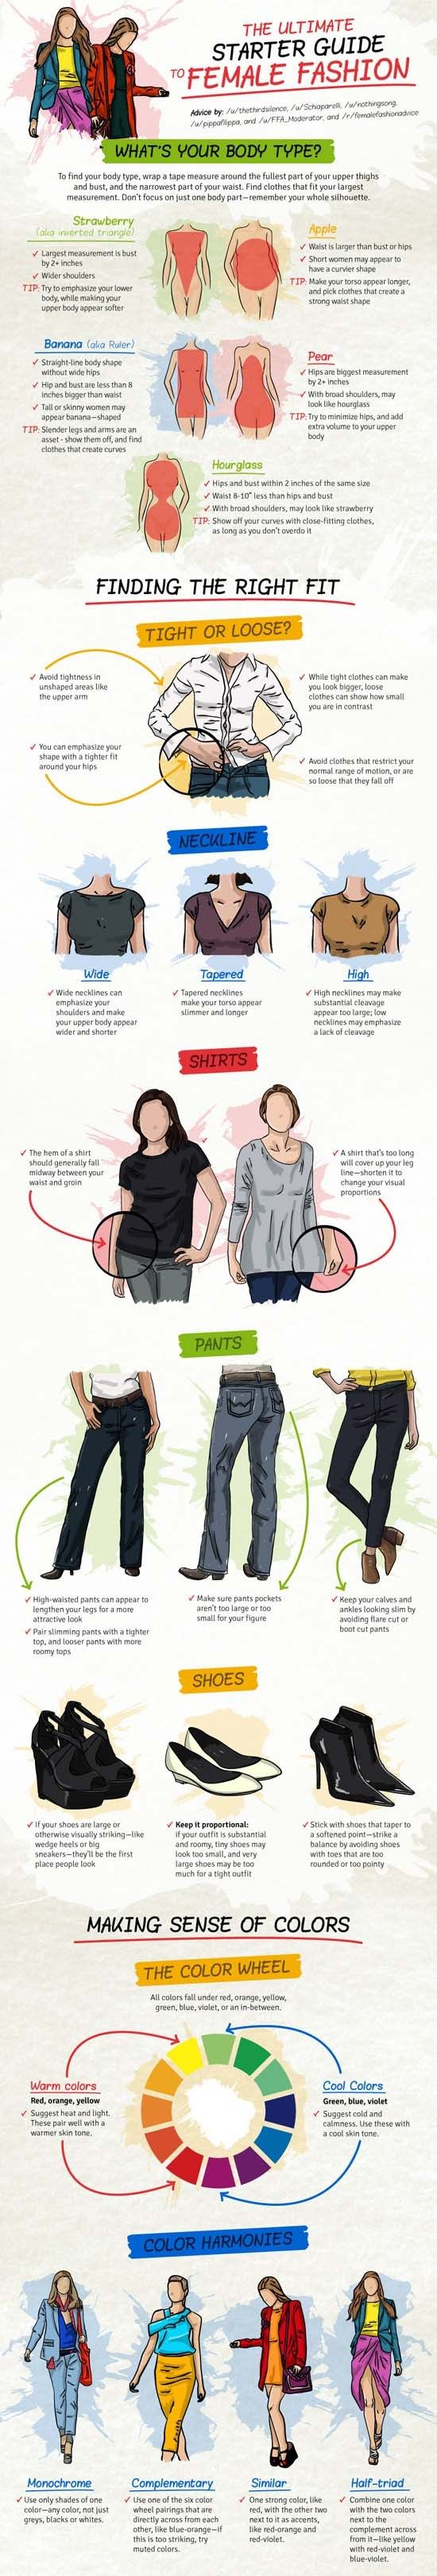 Starter Guide to Female Fashion: How to dress for your body